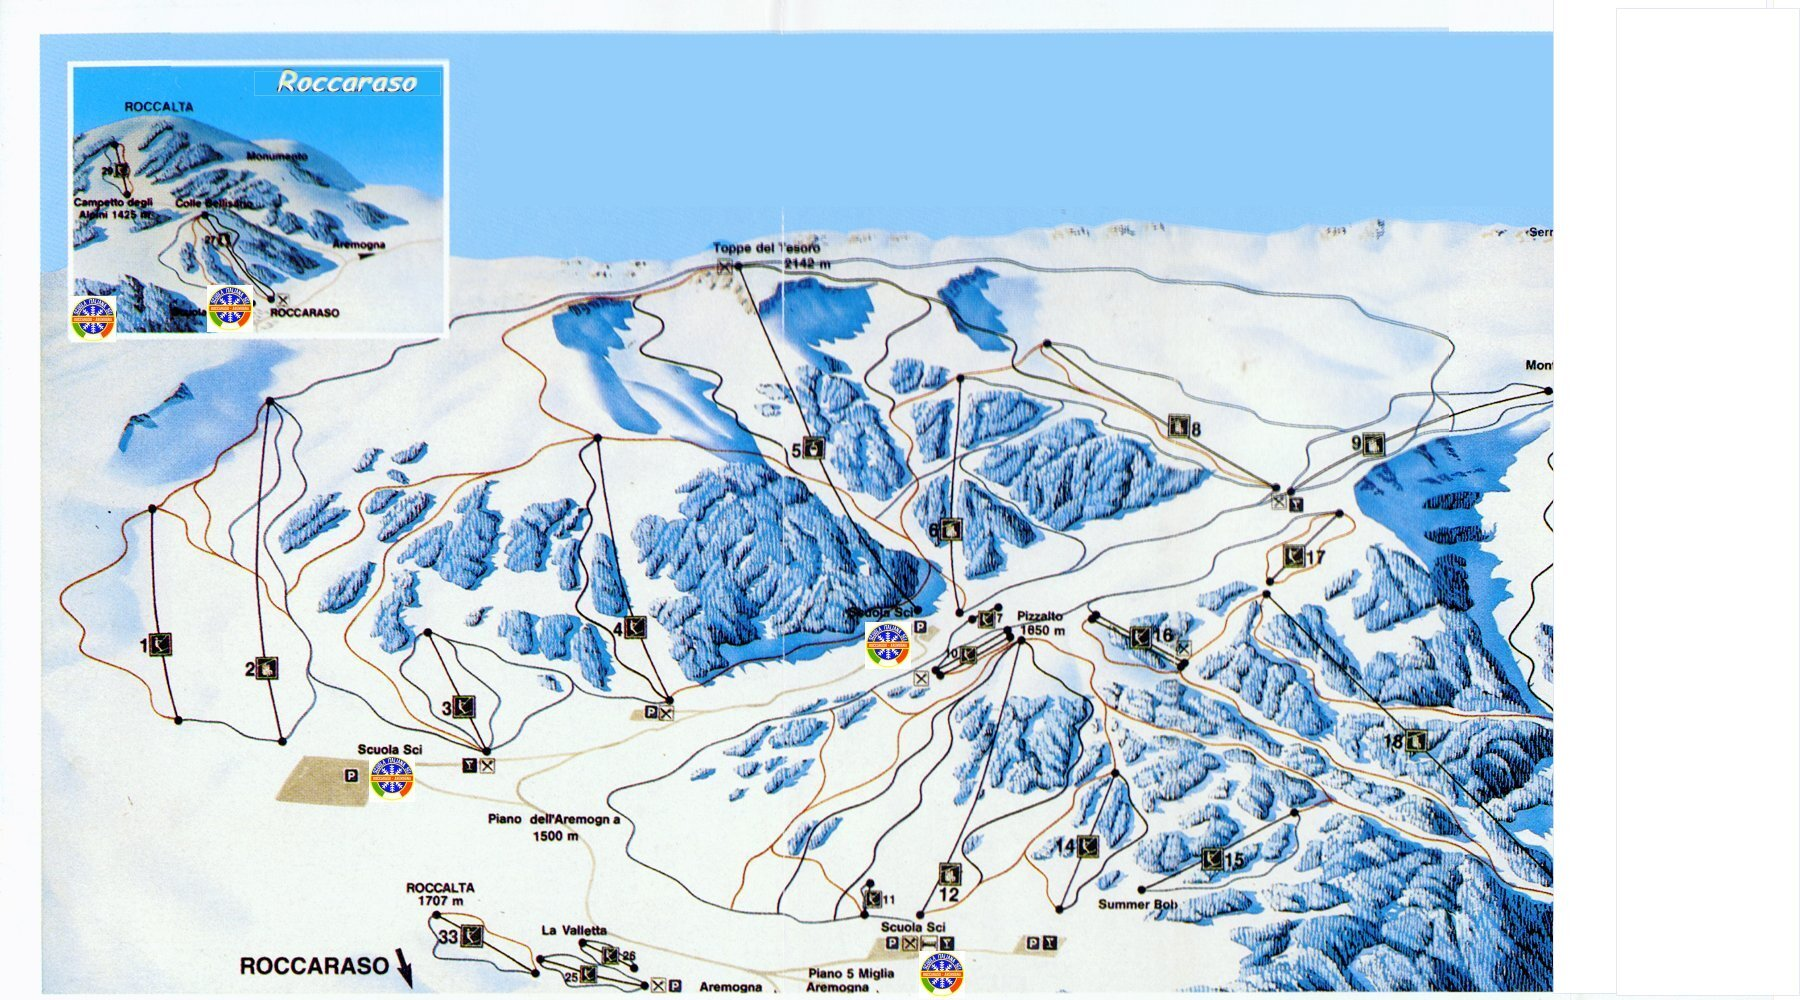 Roccaraso Piste / Trail Map